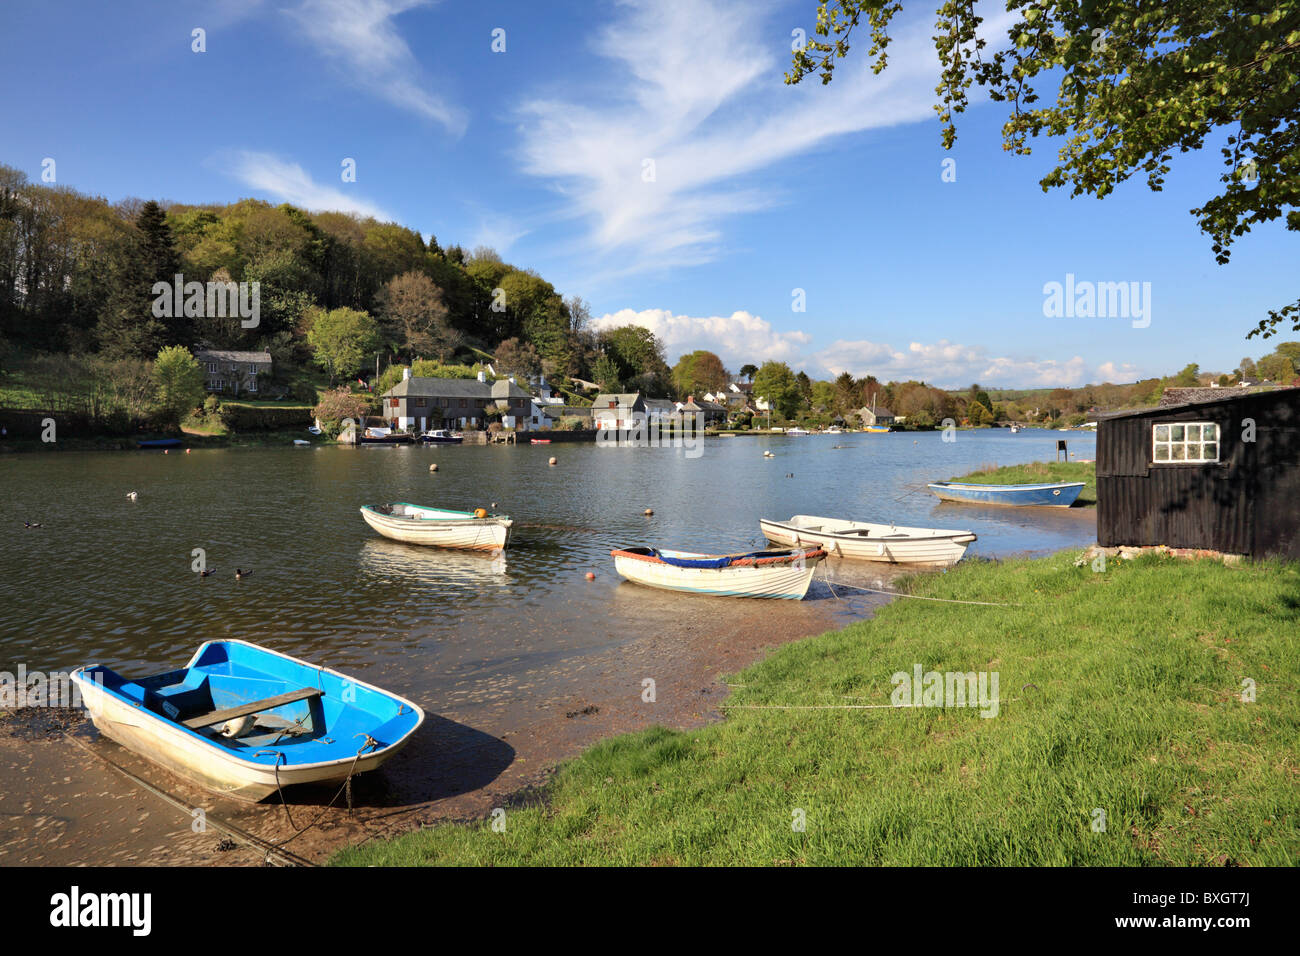 Boats at Lerryn at high tide - Stock Image